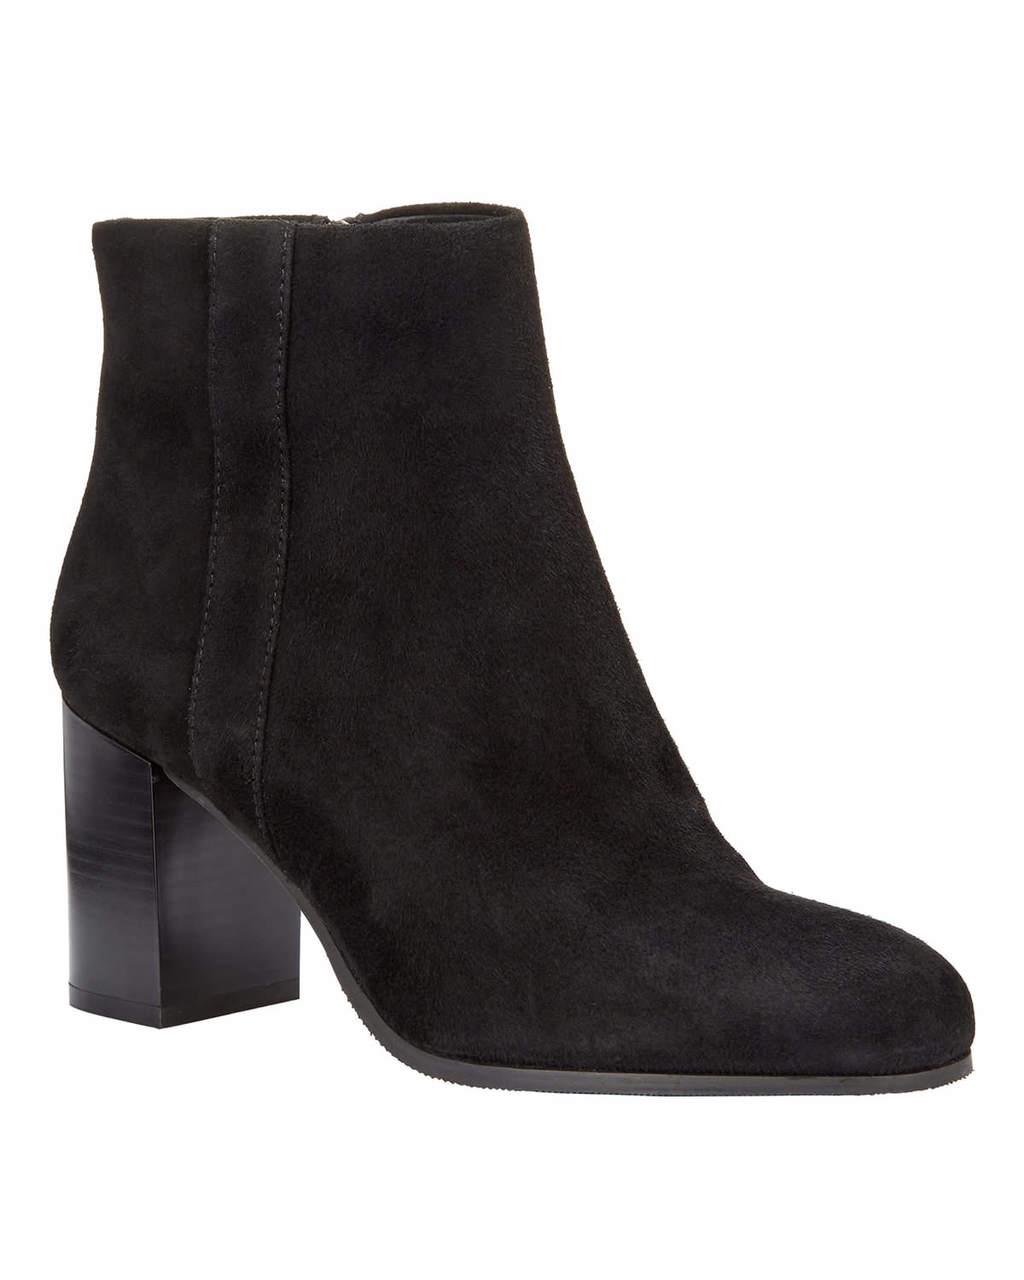 Ellen Block Heel Ankle Boot - predominant colour: black; occasions: casual; material: suede; heel height: high; heel: block; toe: round toe; boot length: ankle boot; style: standard; finish: plain; pattern: plain; season: a/w 2016; wardrobe: highlight